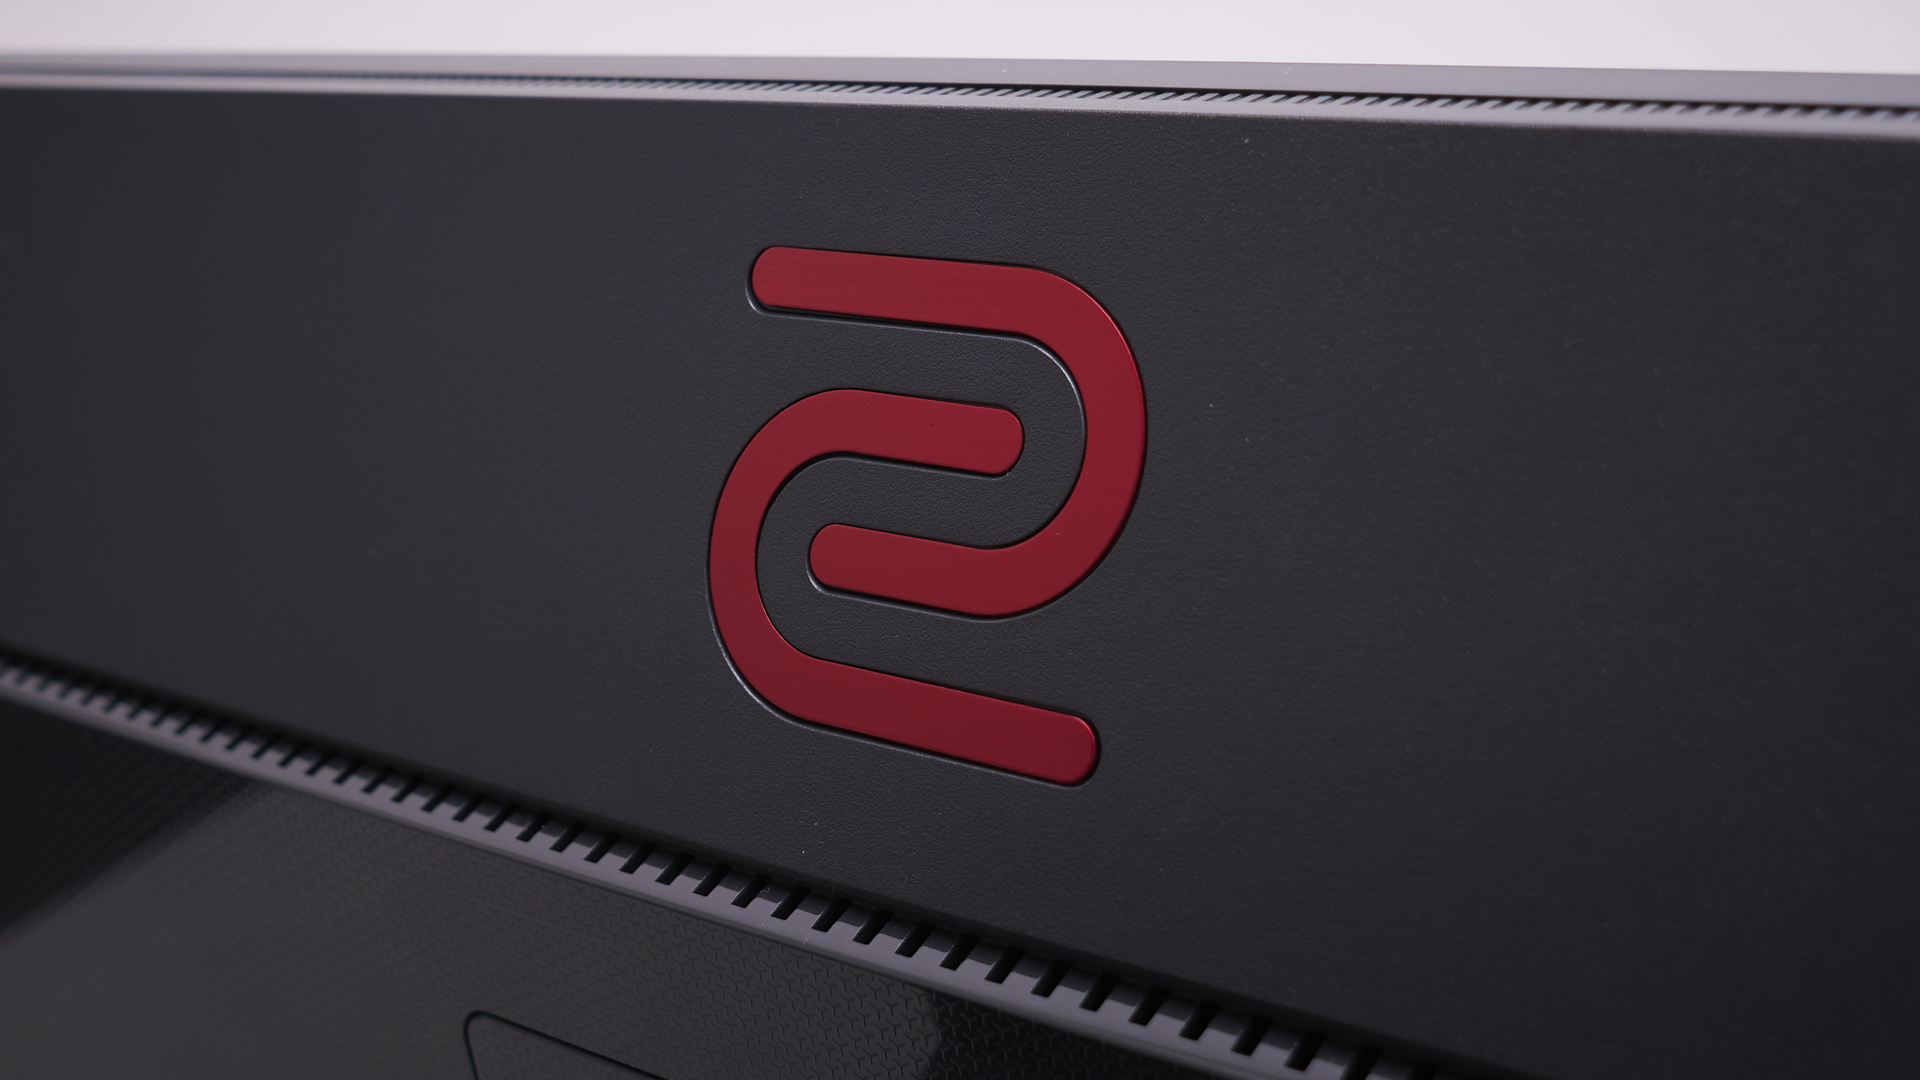 Benq Zowie XL2546S review - input lag tests | WASD